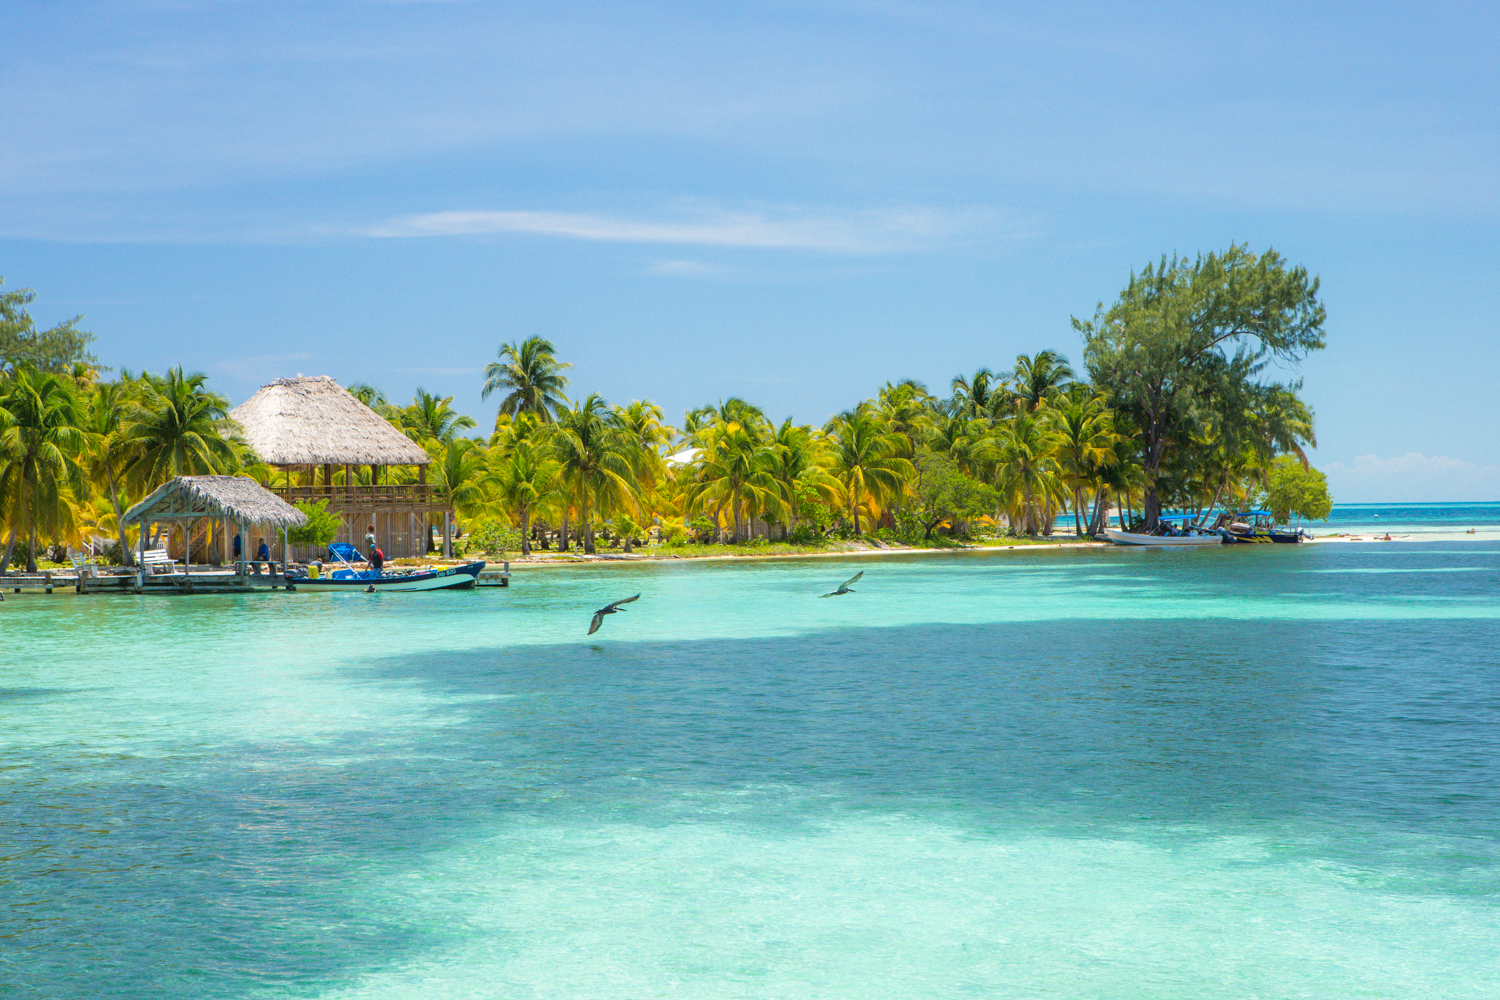 6 Cayes that aren't Caye Caulker or Ambergris Caye | 1